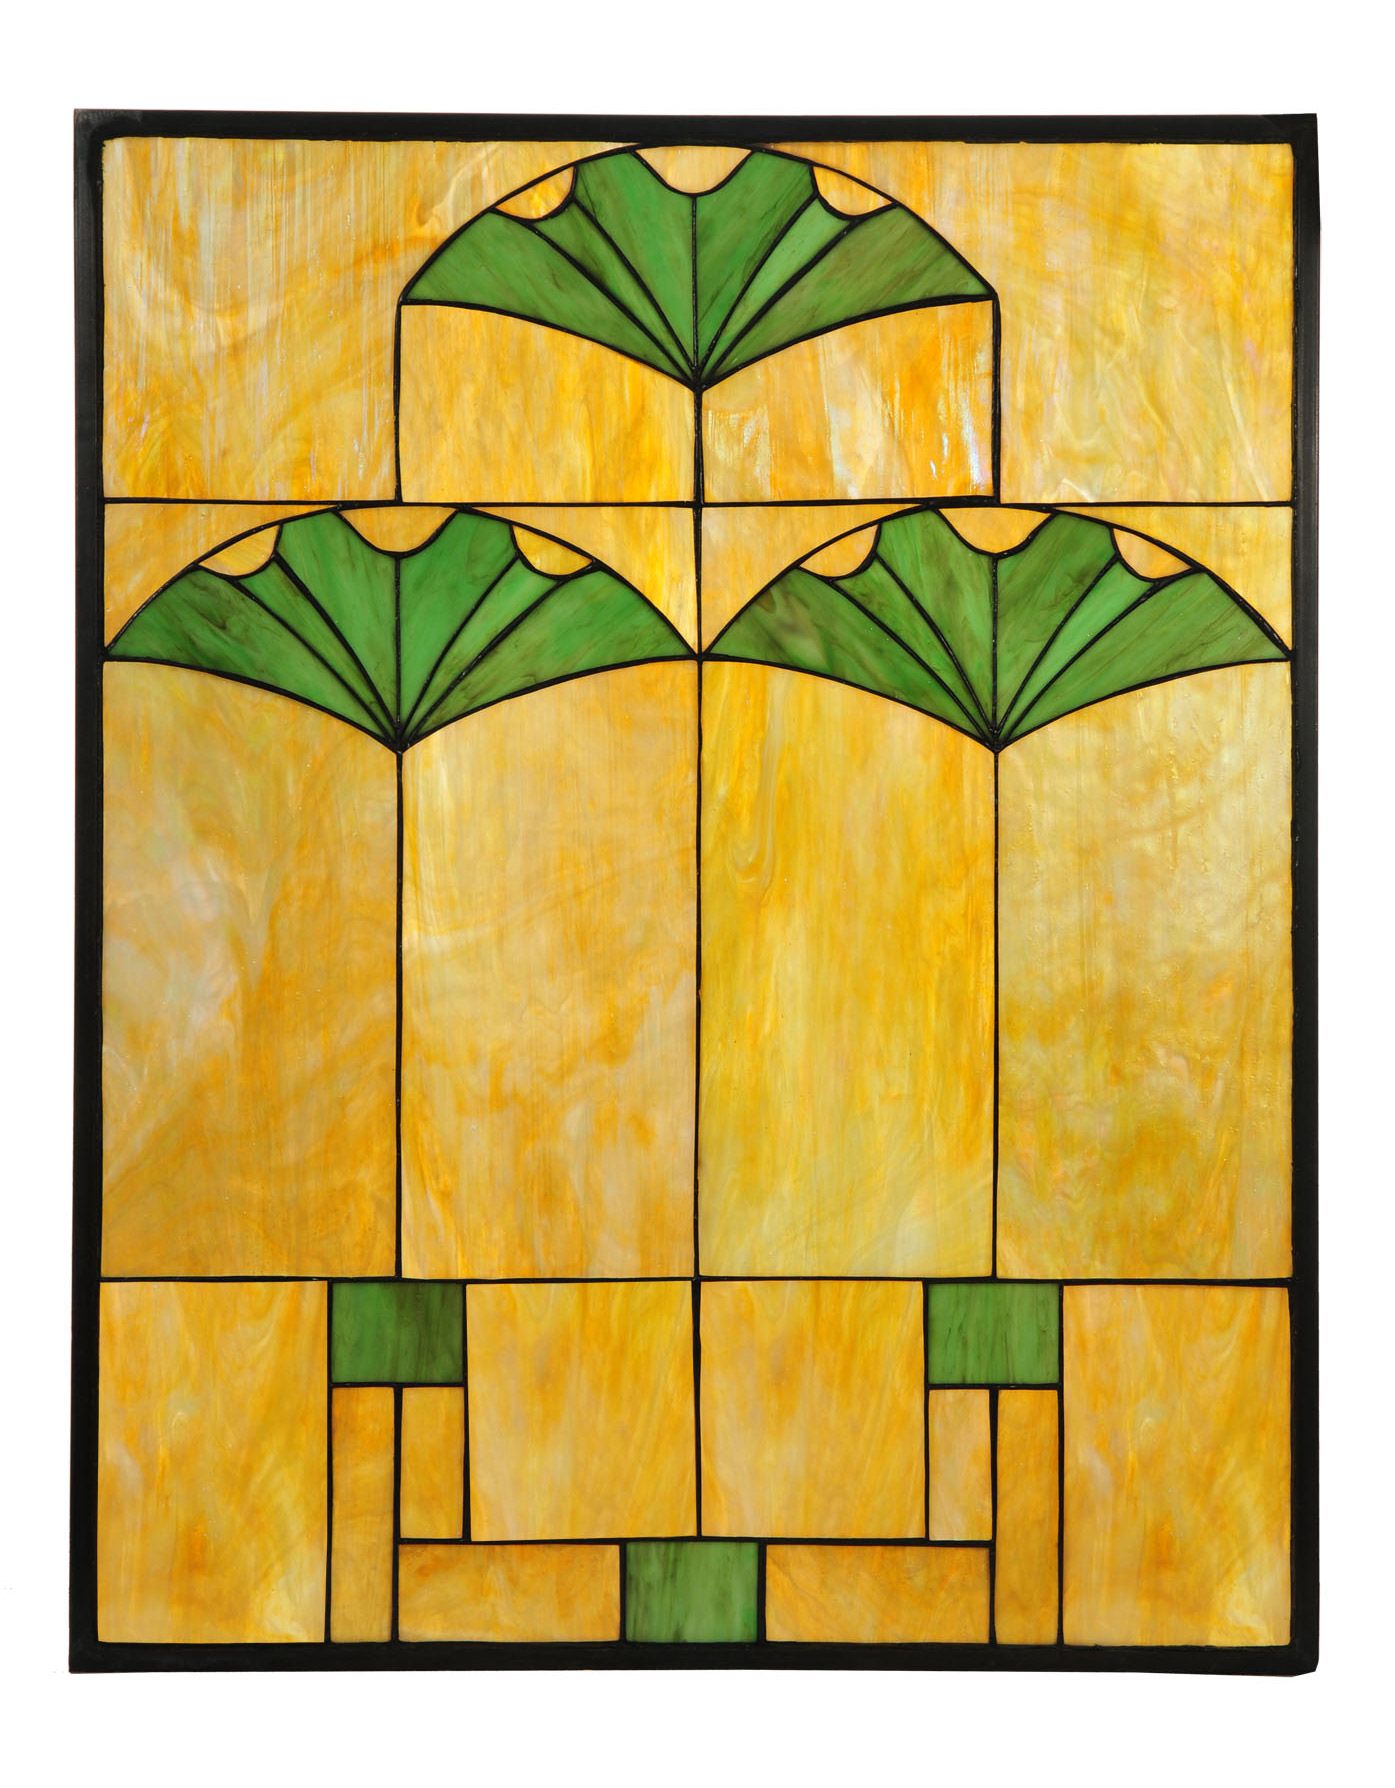 Meyda 108947 Tiffany Ginkgo Stained Glass Window